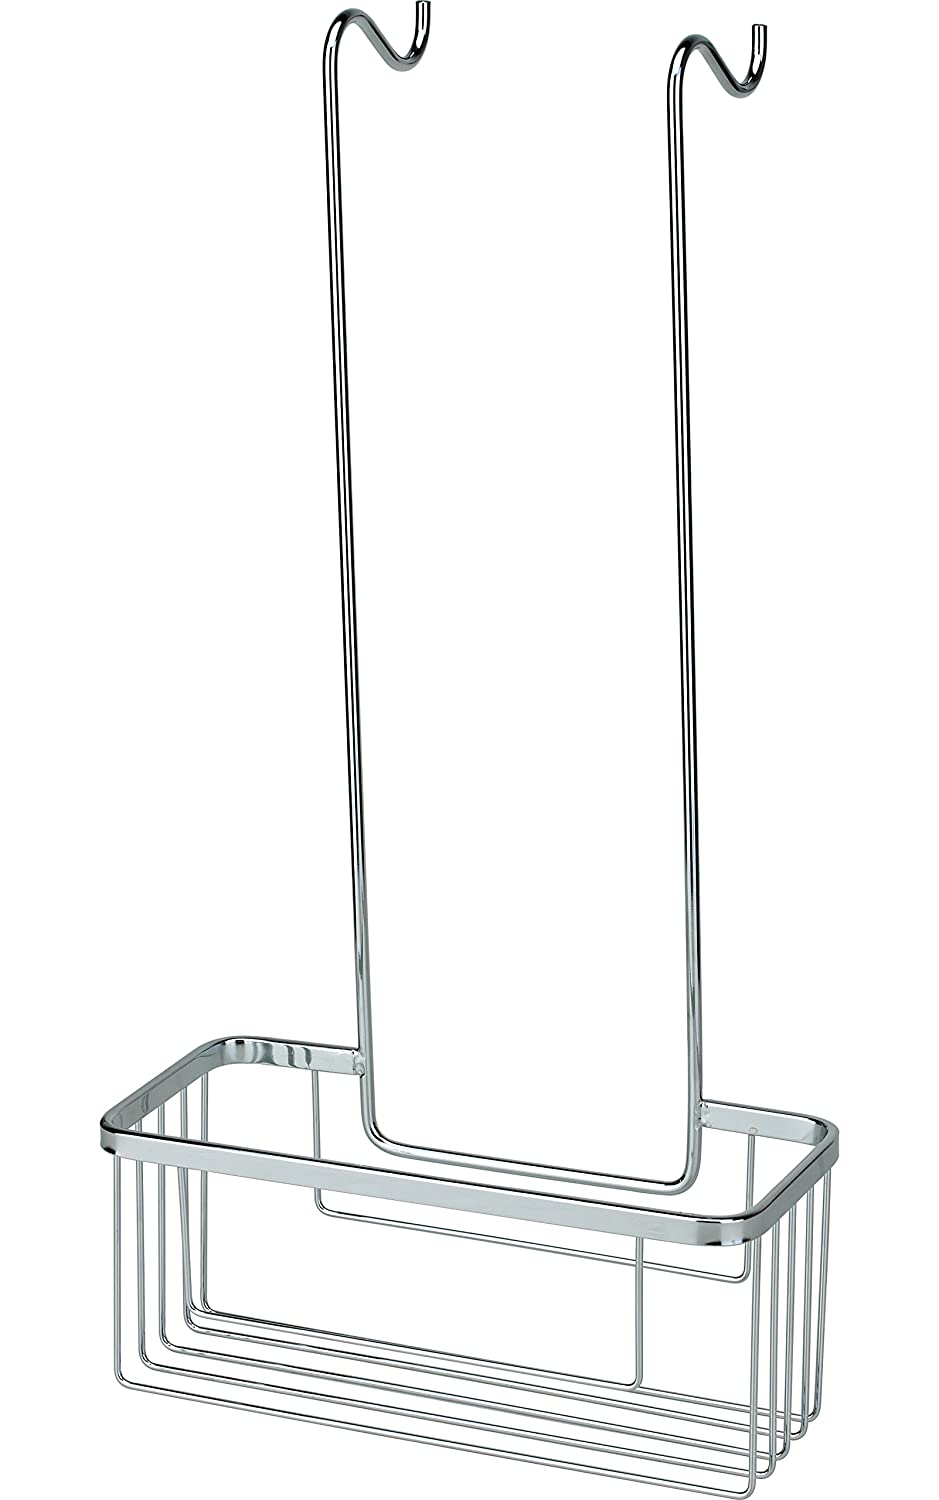 Chrome Shower Hook Over Caddy Basket Organiser - Rust Resistant (Screen Door Caddy) Tailored-Plumb